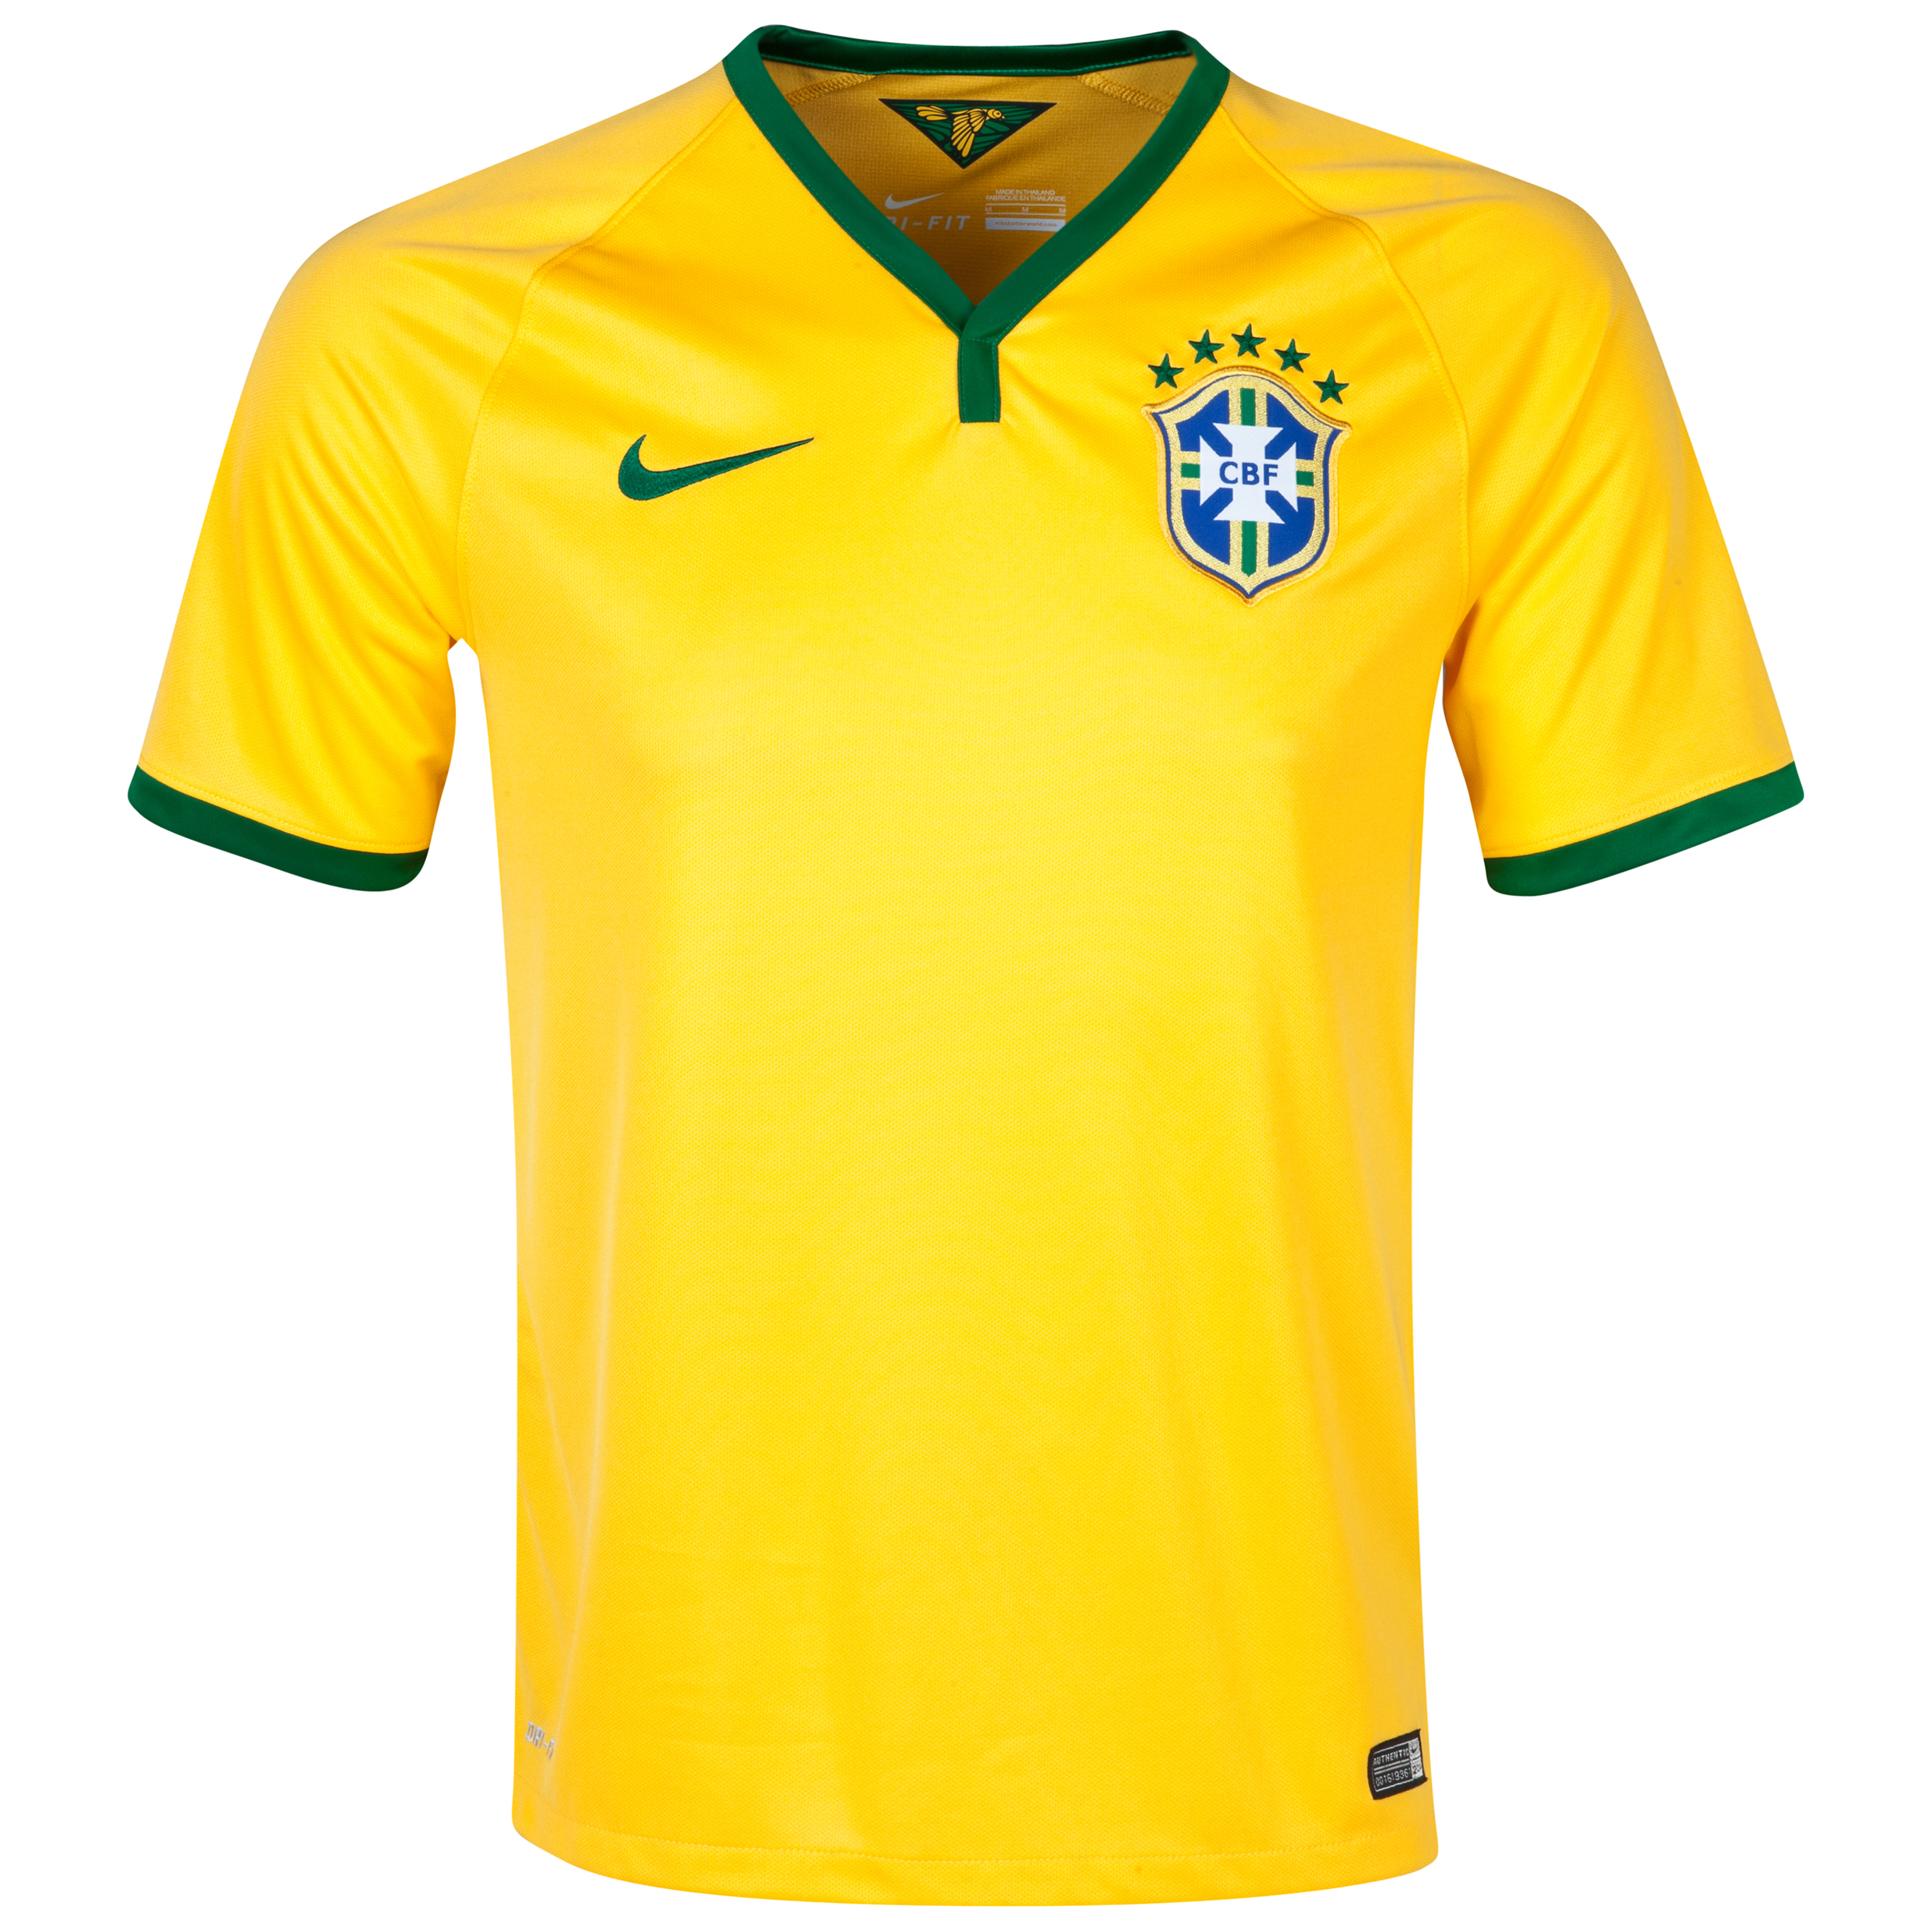 Brazil Home Shirt 2013/14 Yellow